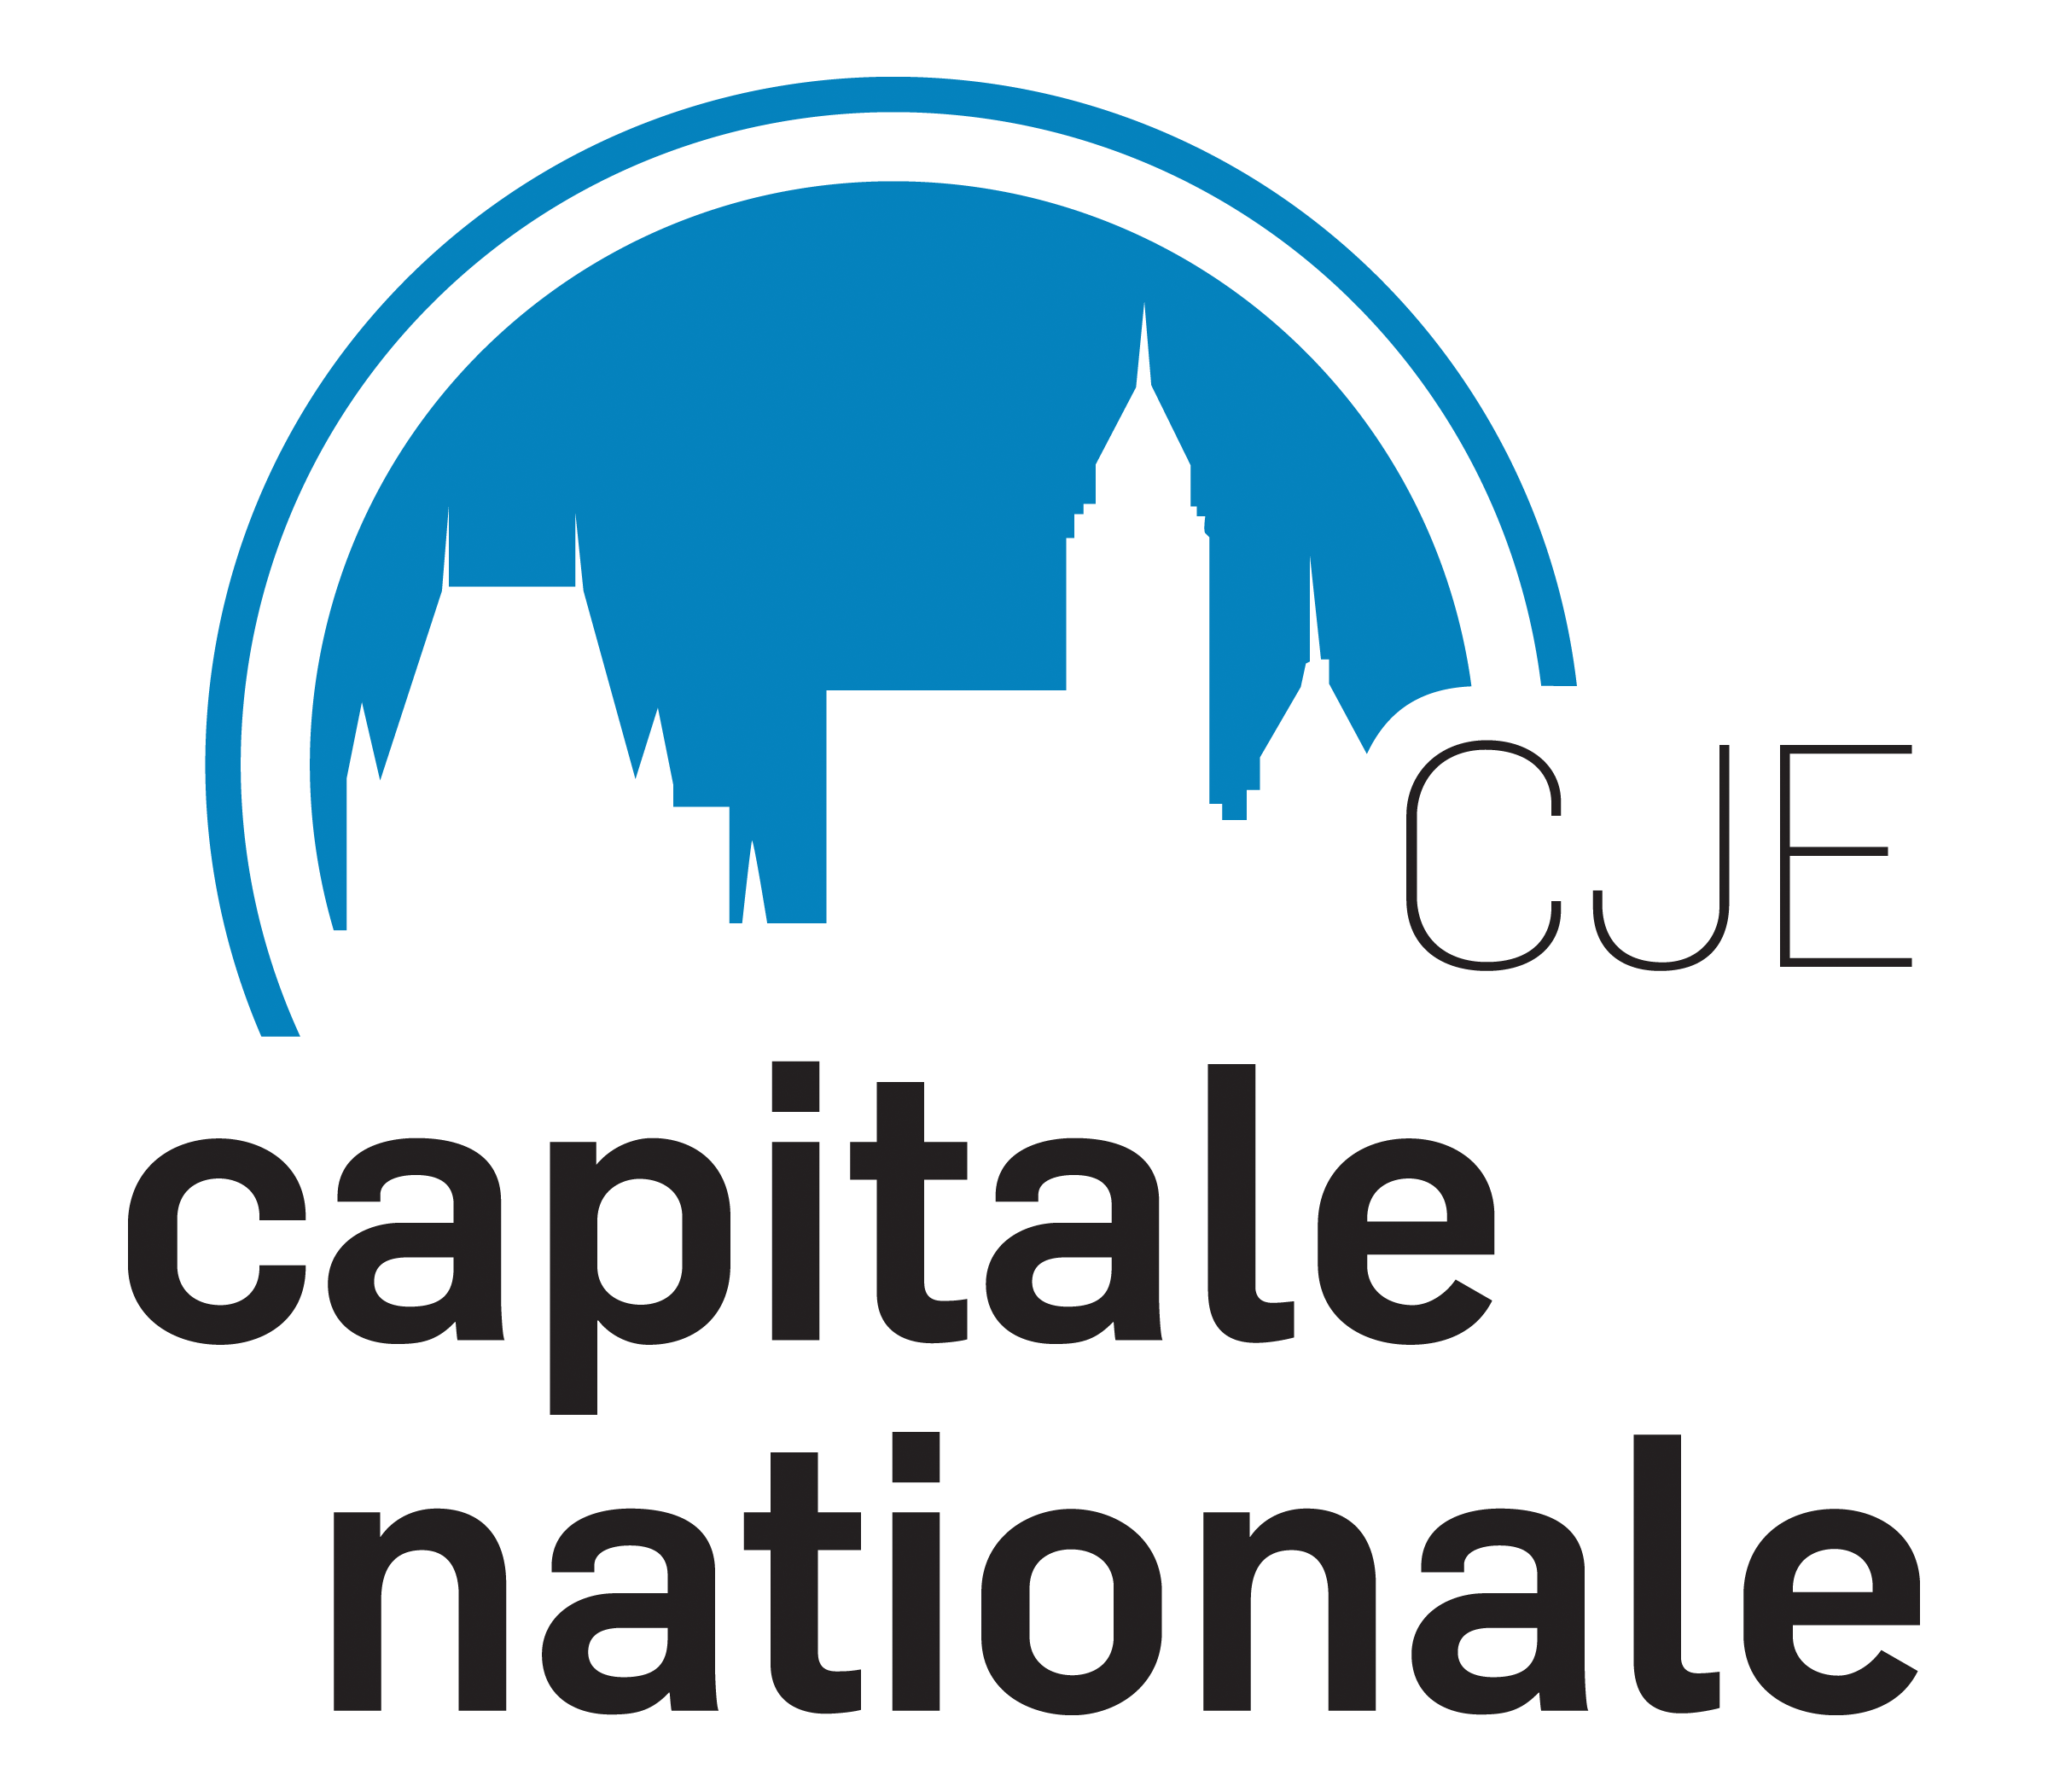 CJE Capitale Nationale